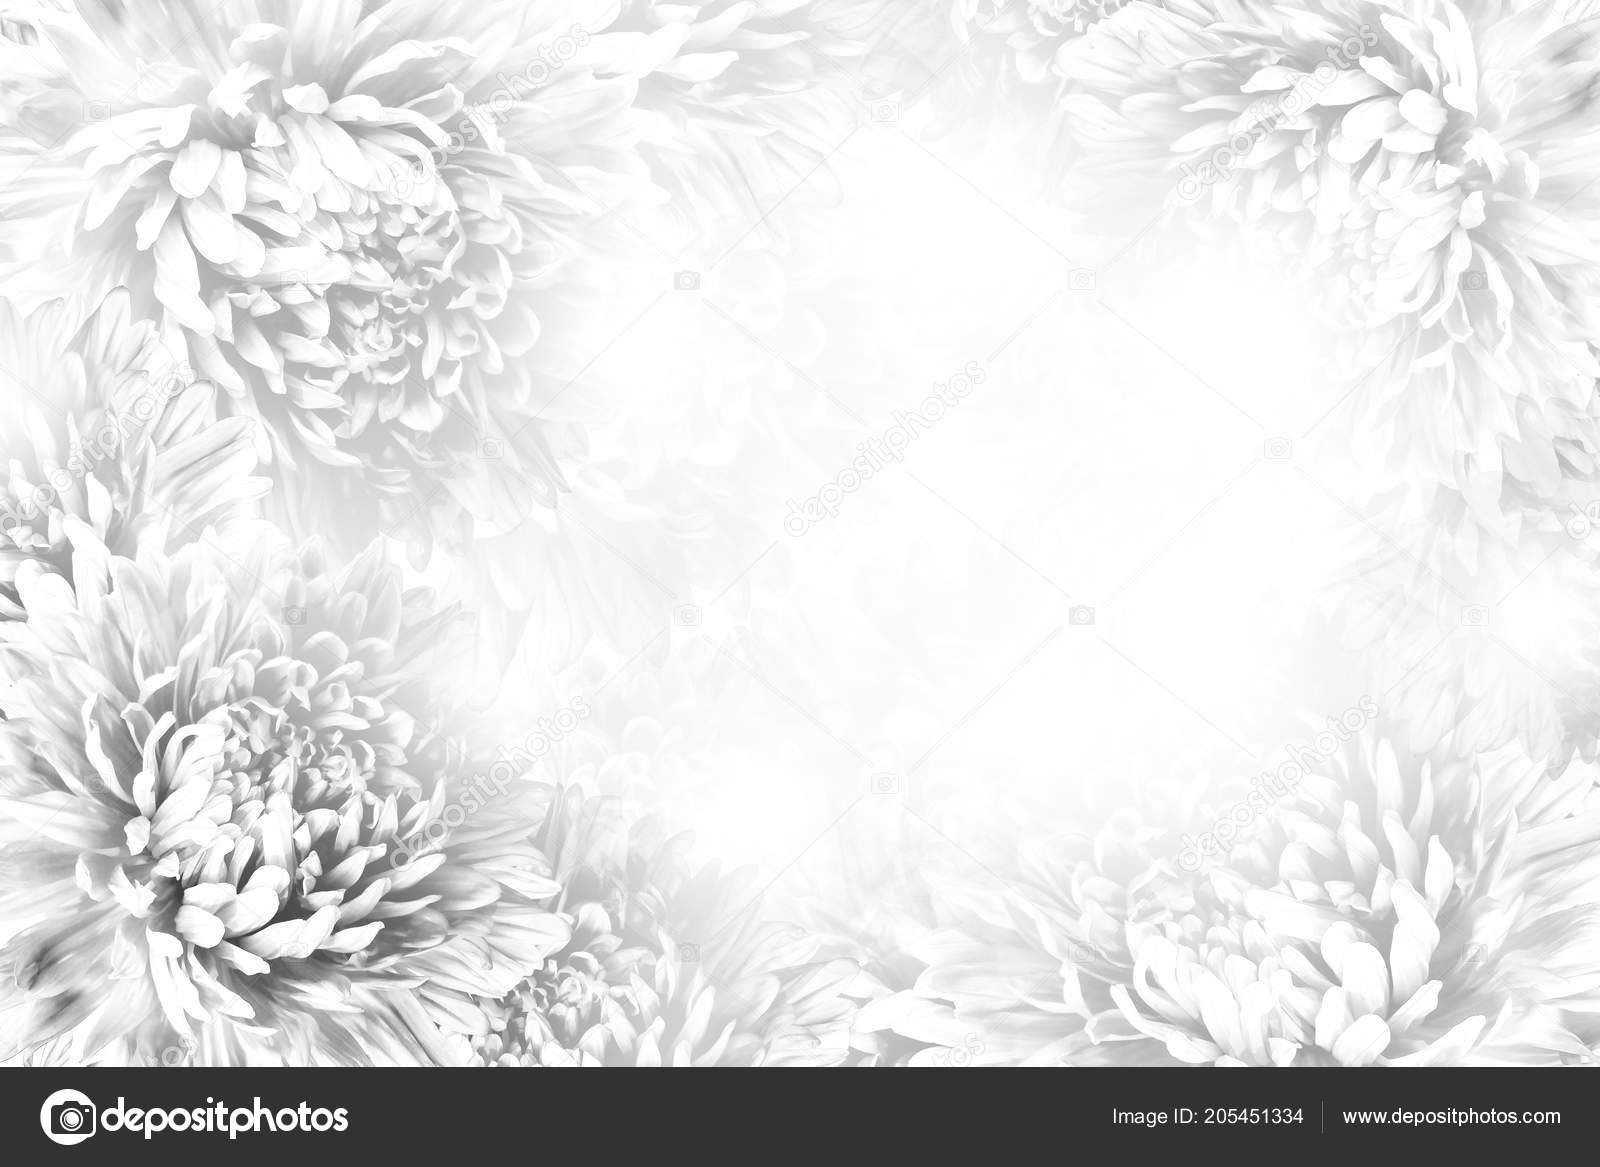 Floral Gray White Beautiful Background Flower Composition Frame